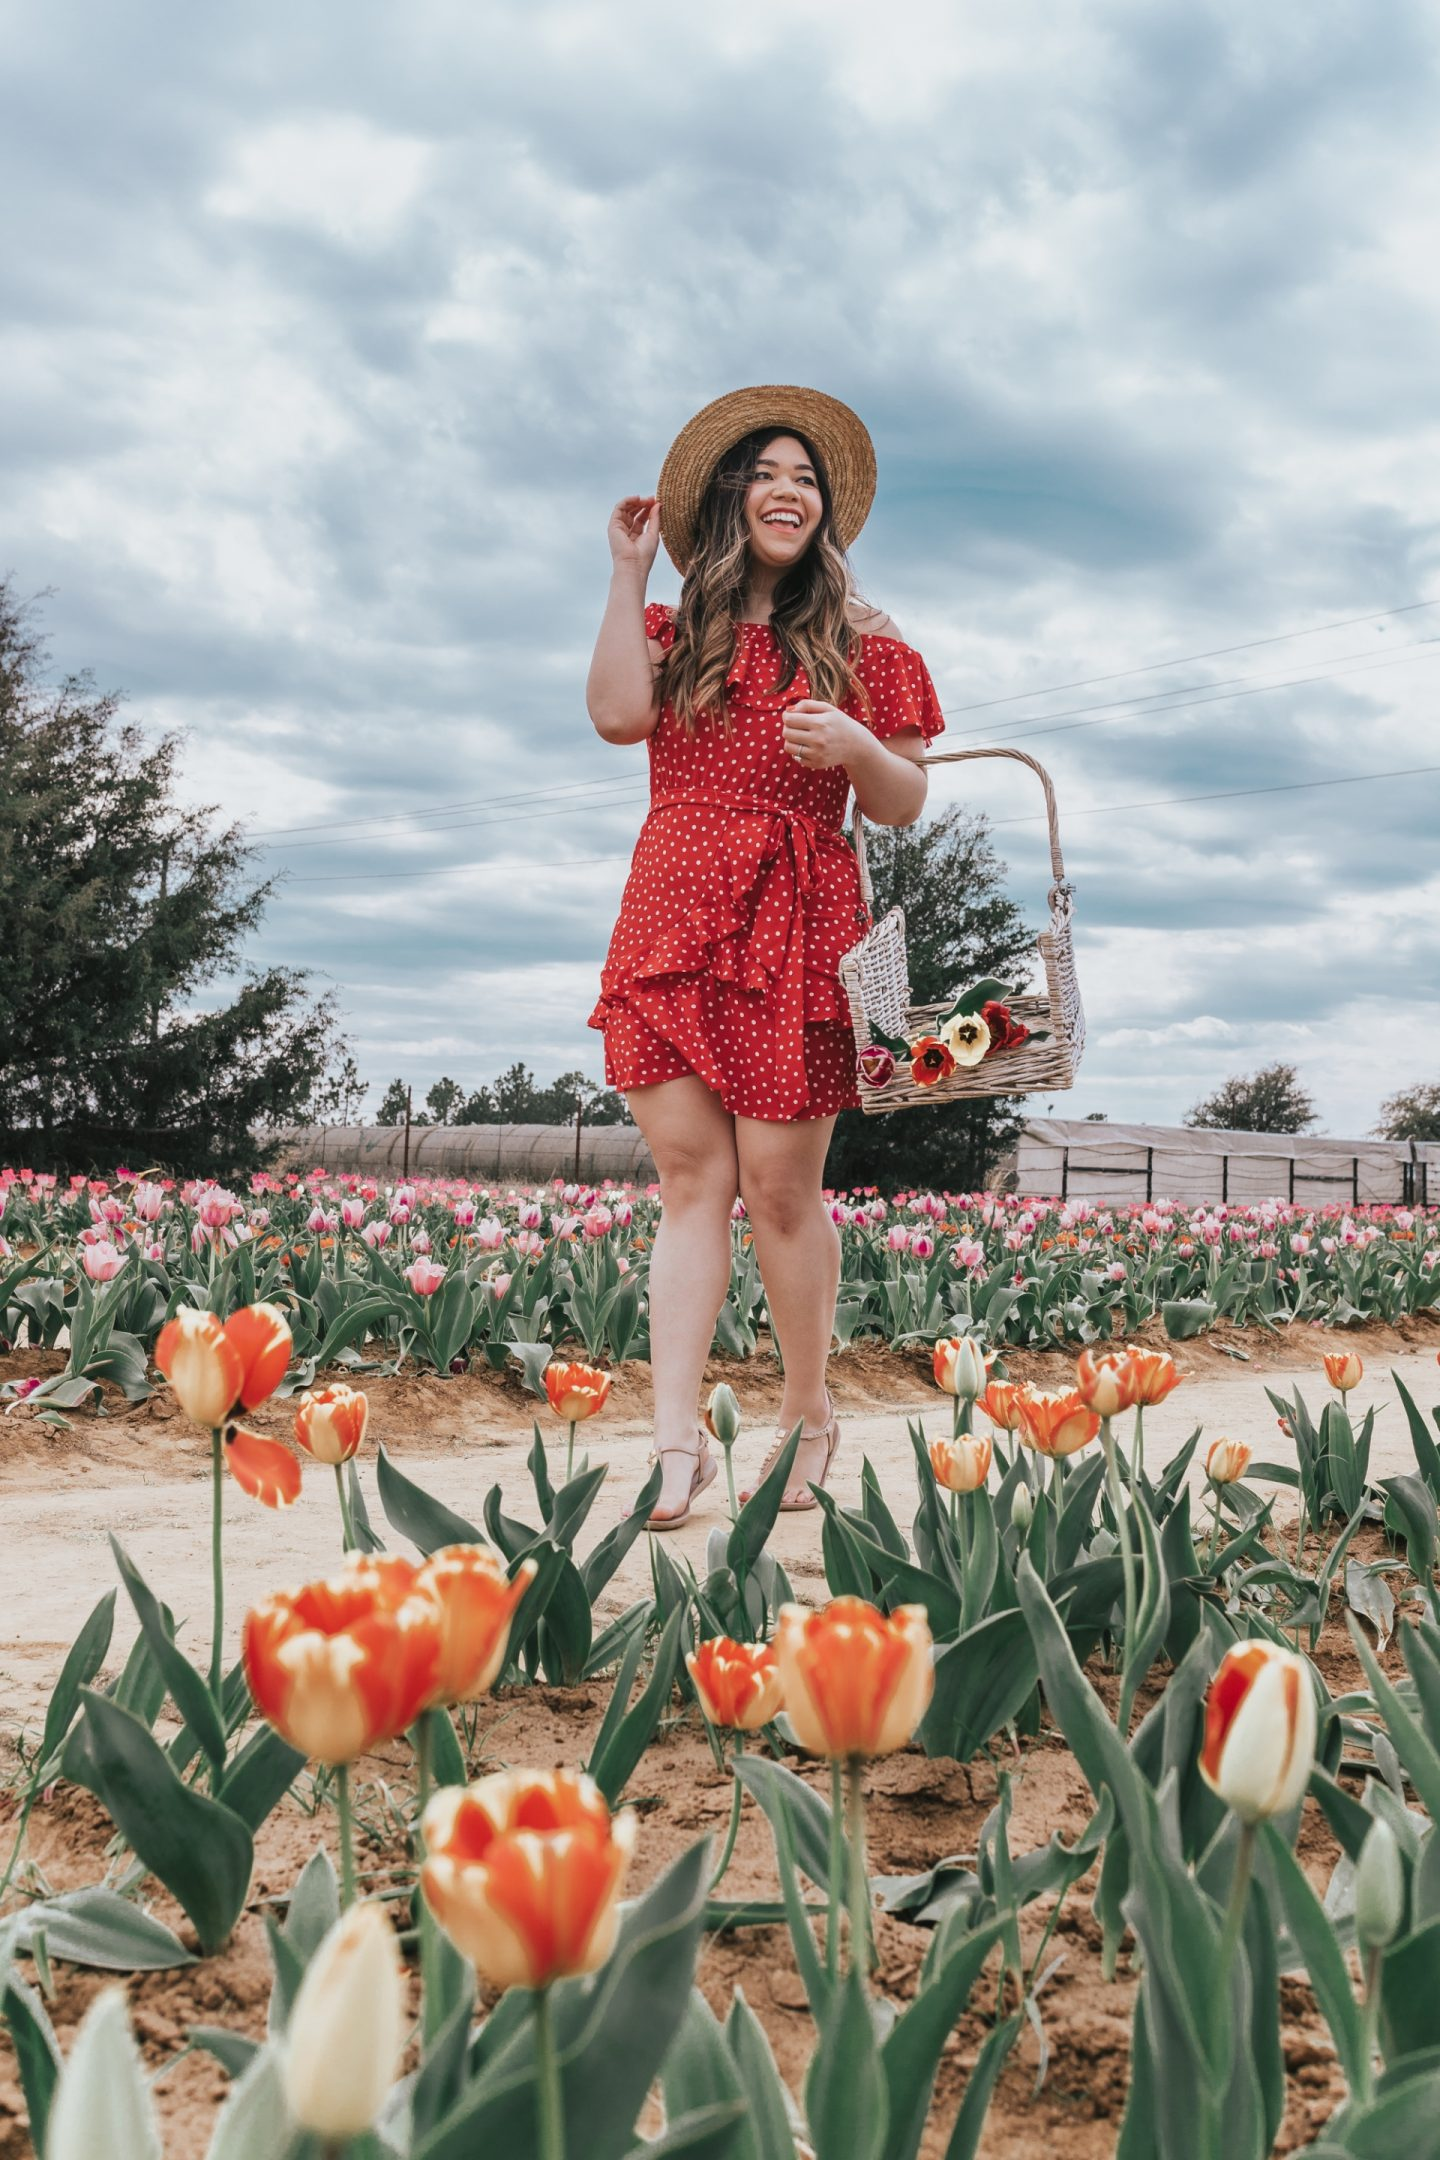 Red Polka Dot Wrap Dress for Texas Tulips